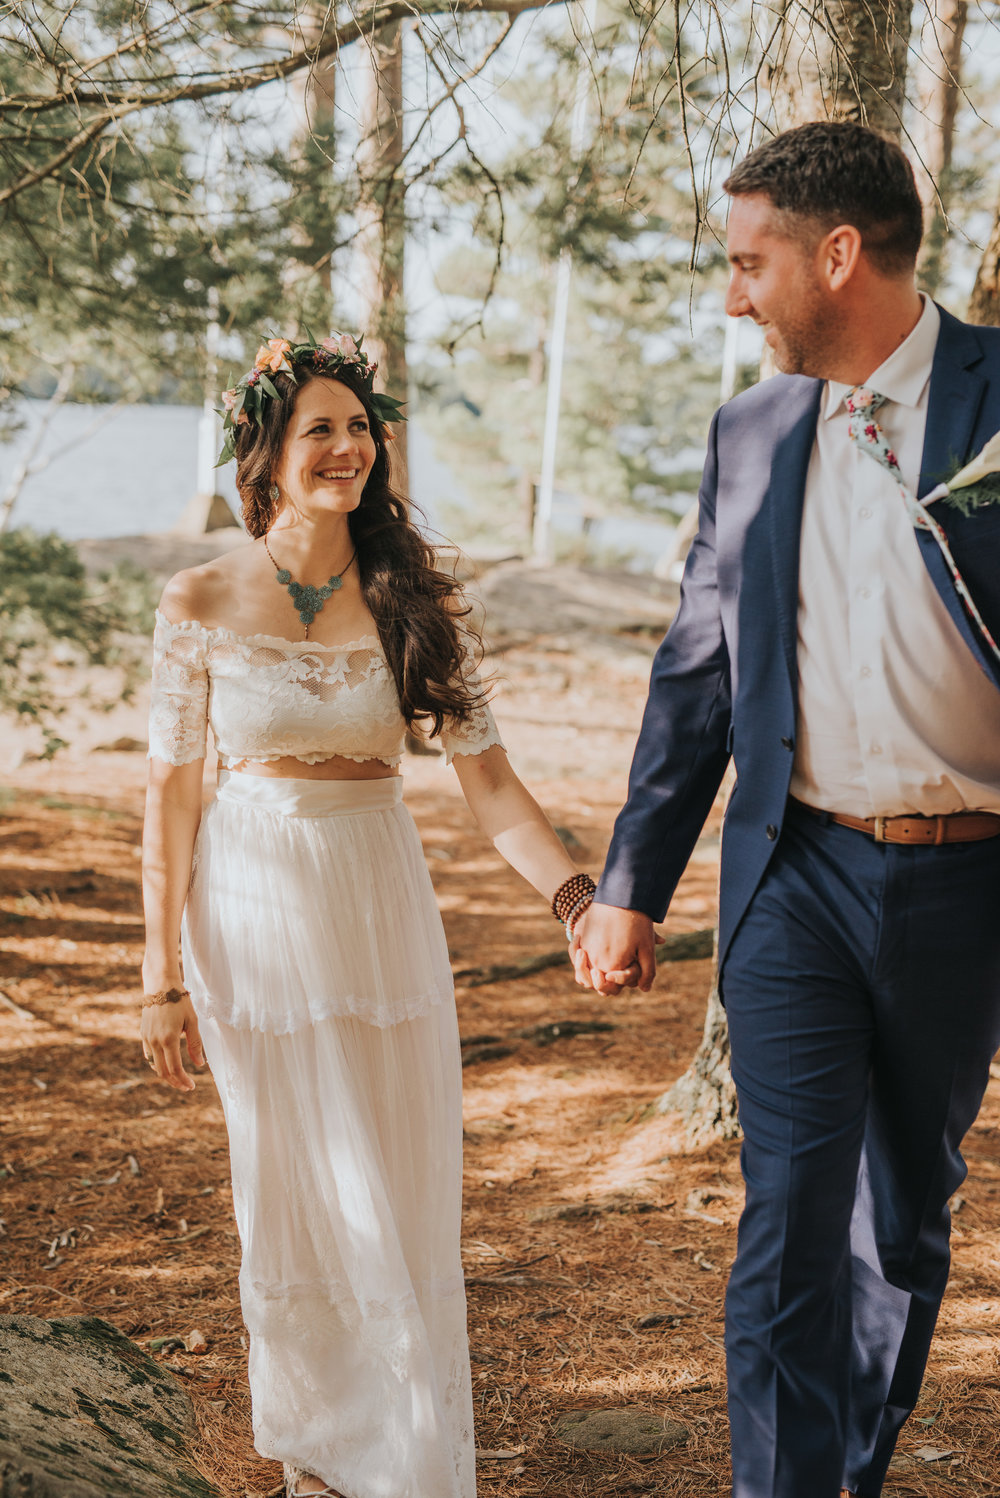 bride-groom-holding-hands-rustic-cabin-toronto-bohemian-boho-outdoor-summer-wedding-documentary-wedding-photography-by-willow-birch-photo.jpg